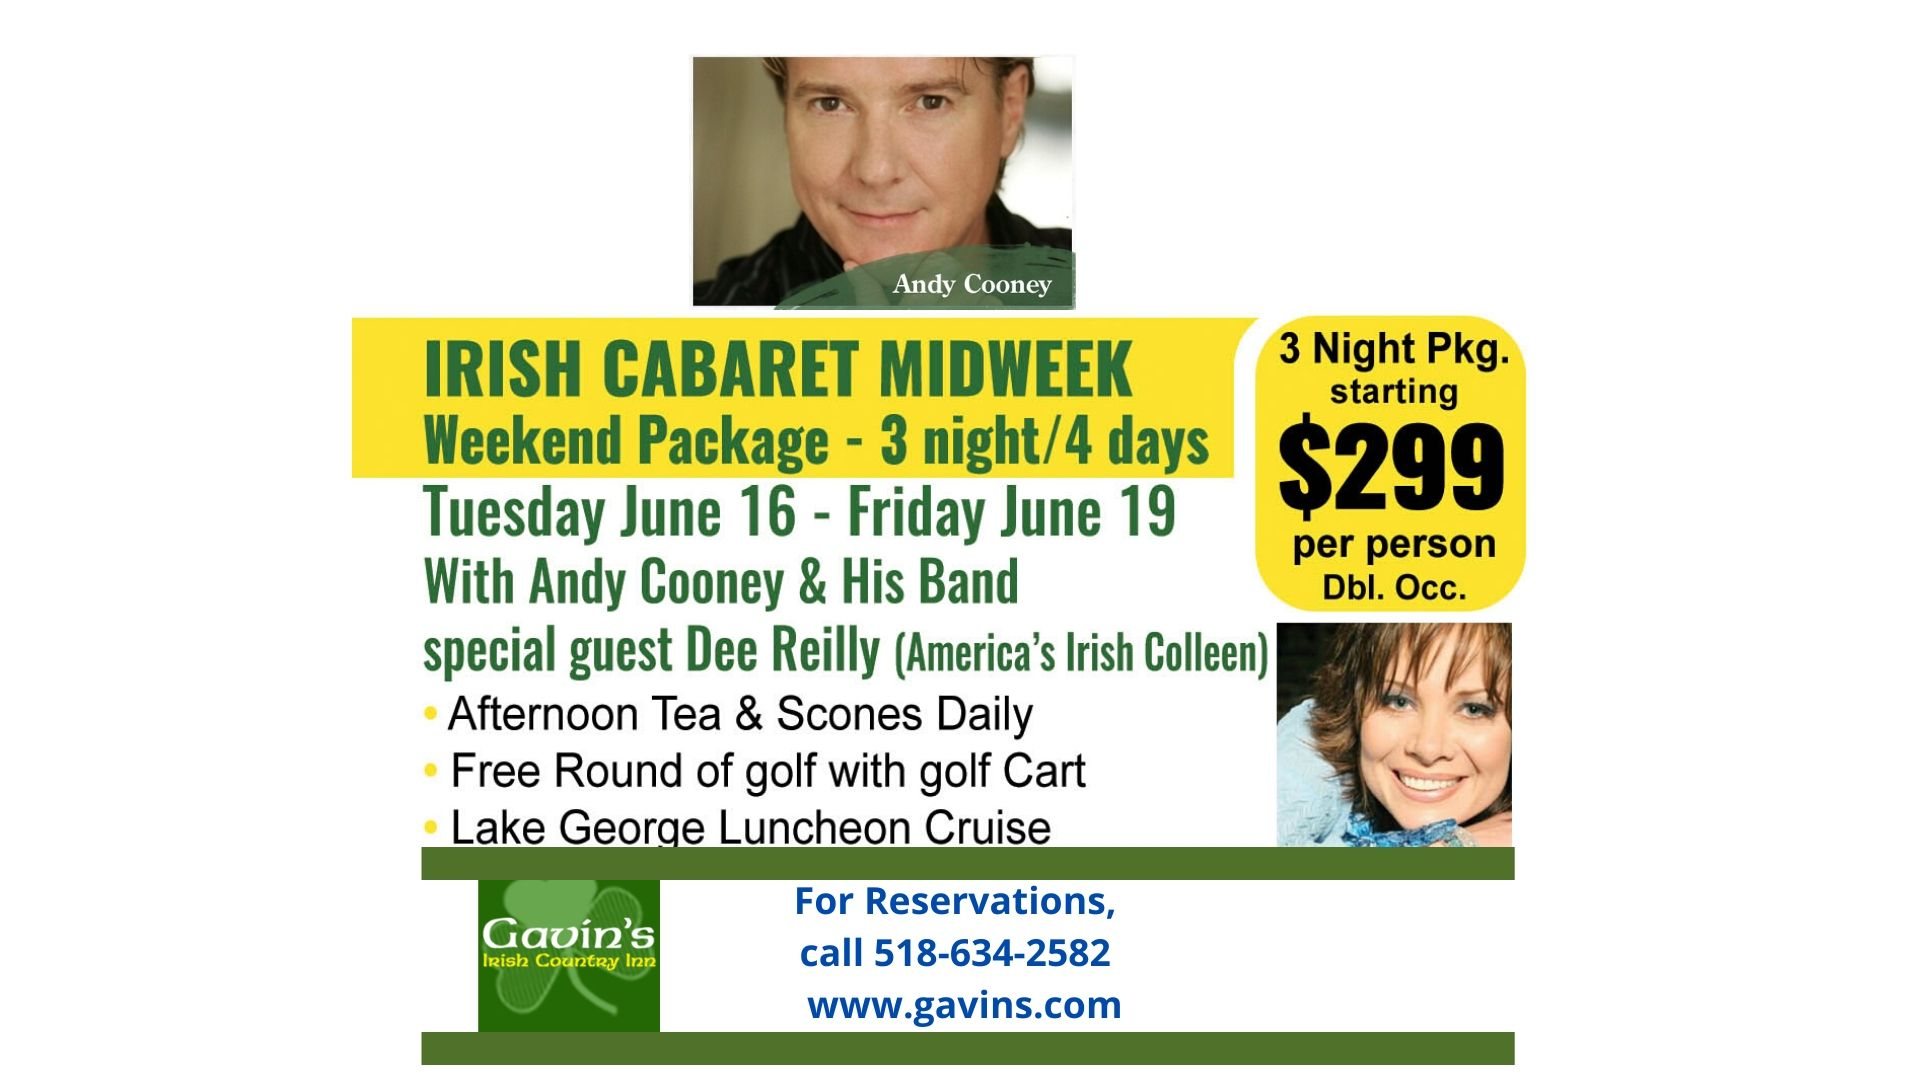 Andy Cooney's Fall Midweek with FREE Golf & Lake George Cruise!